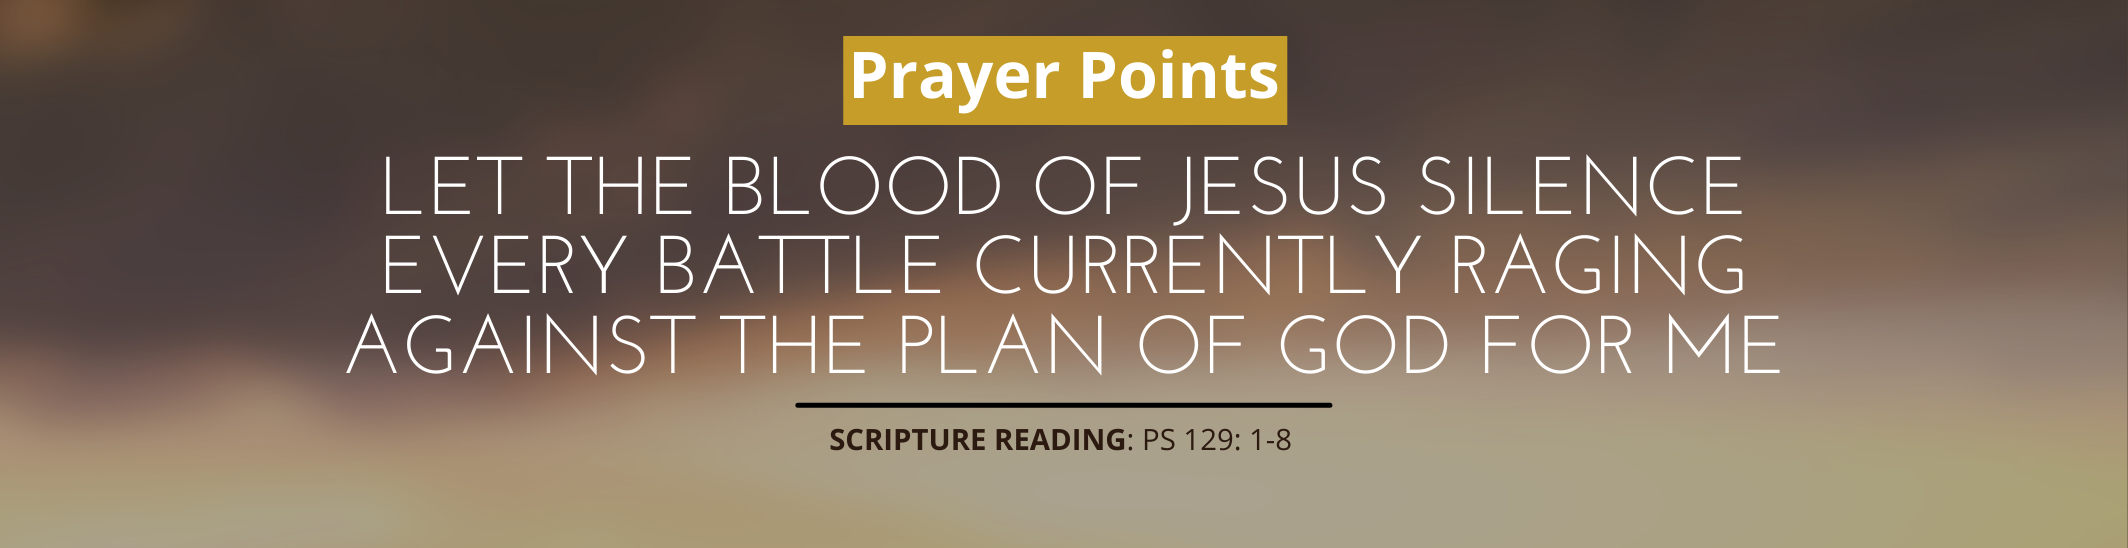 Let The Blood Of Jesus Silence Every Battle Currently Raging Against The Plan Of God For Me